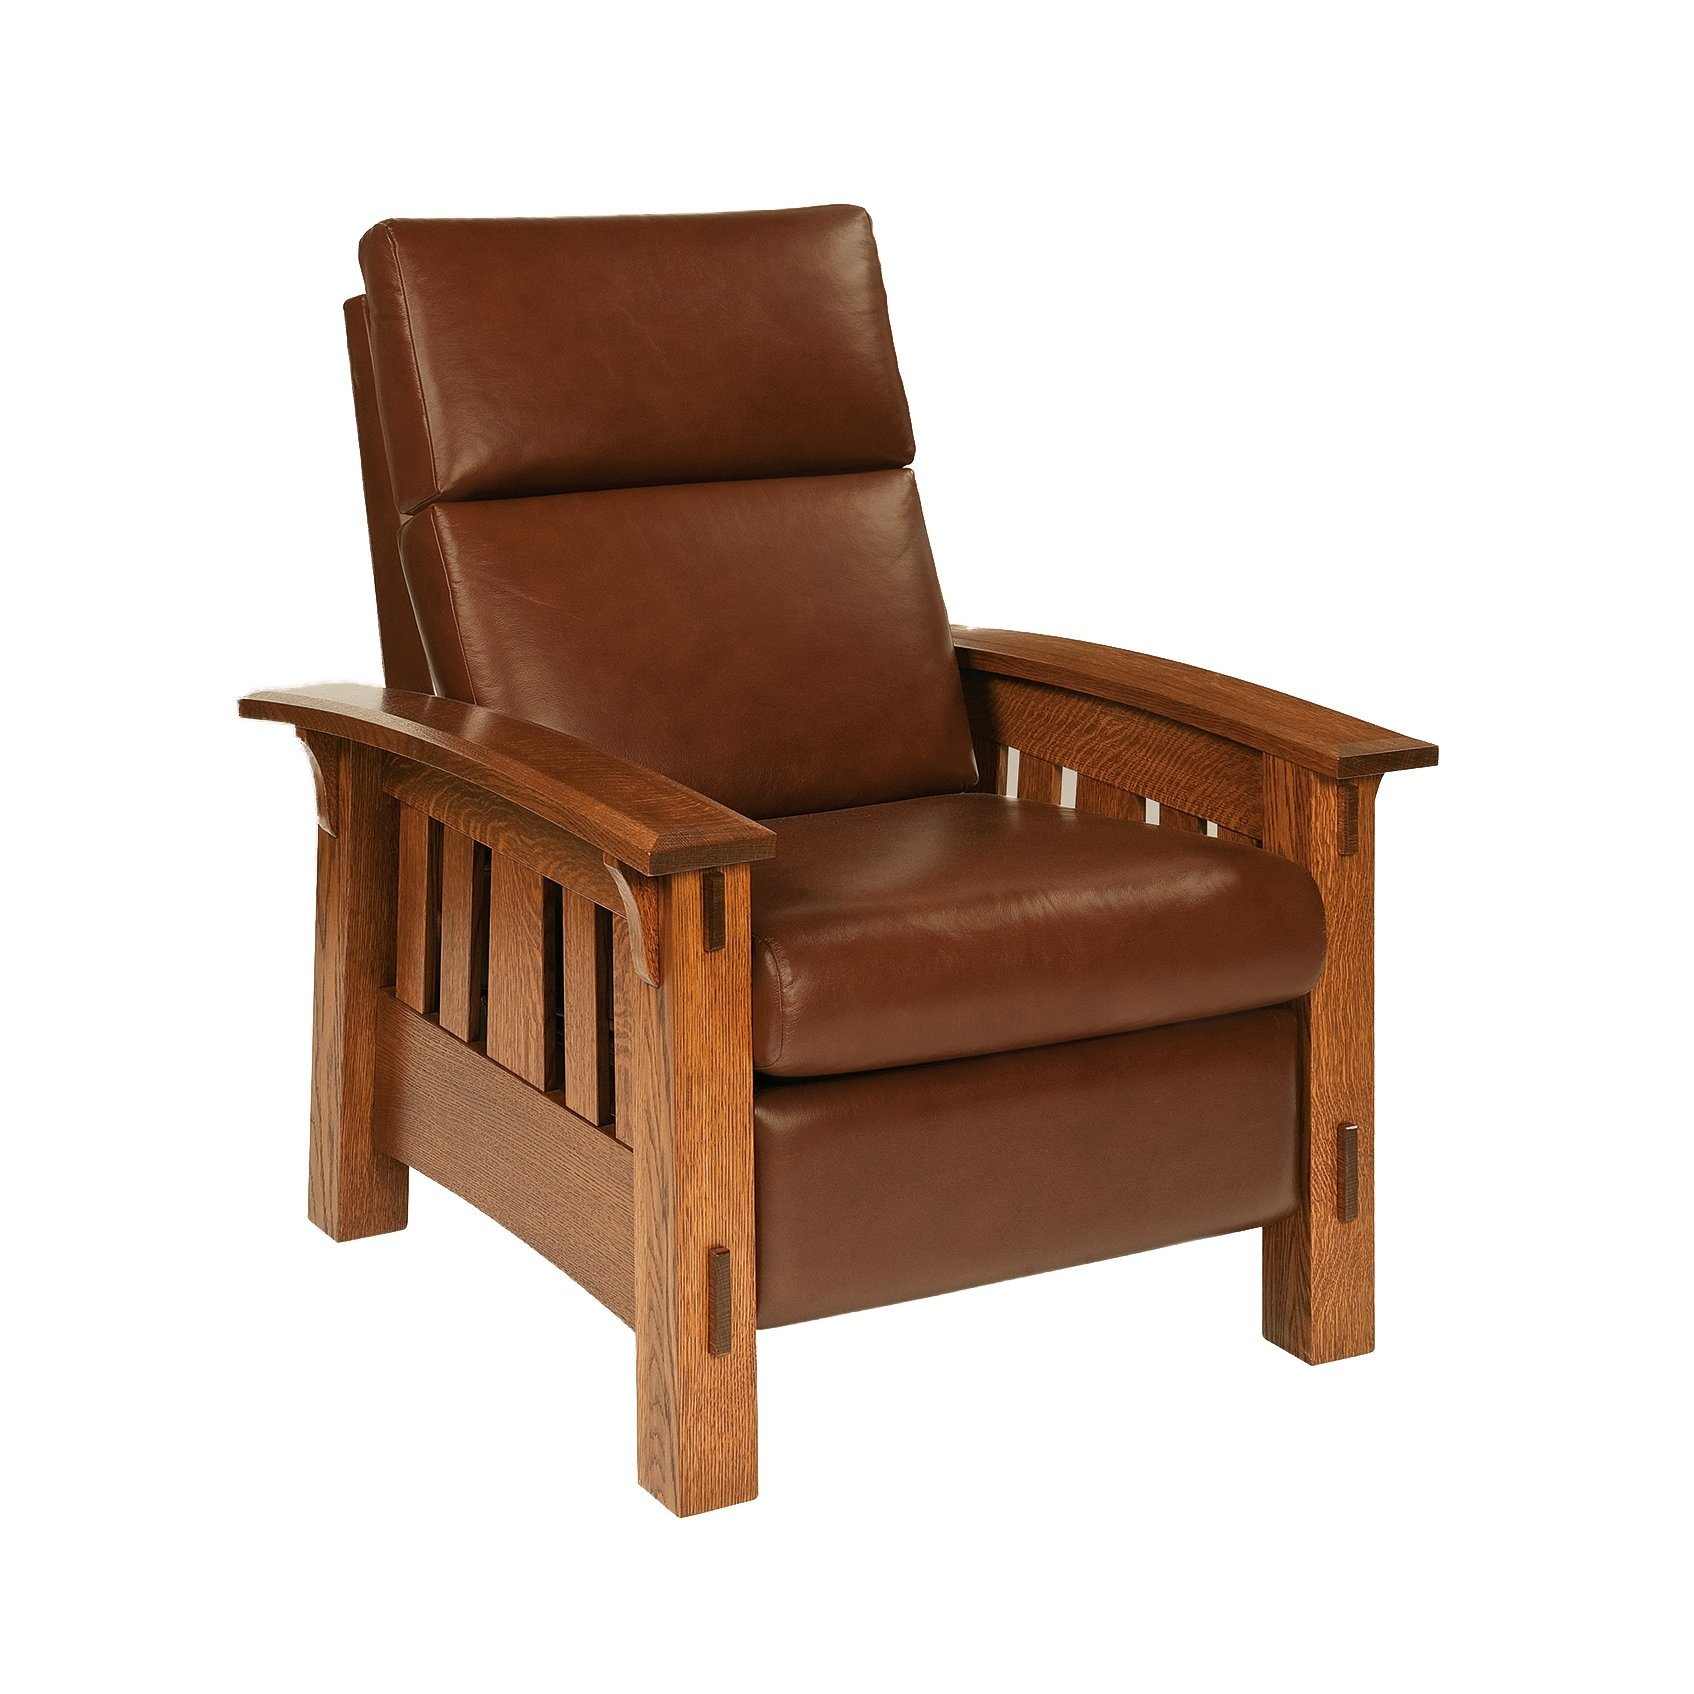 Leather Upholstered Lounge Recliners And Lounge Chairs By Dutchcrafters Amish Furniture